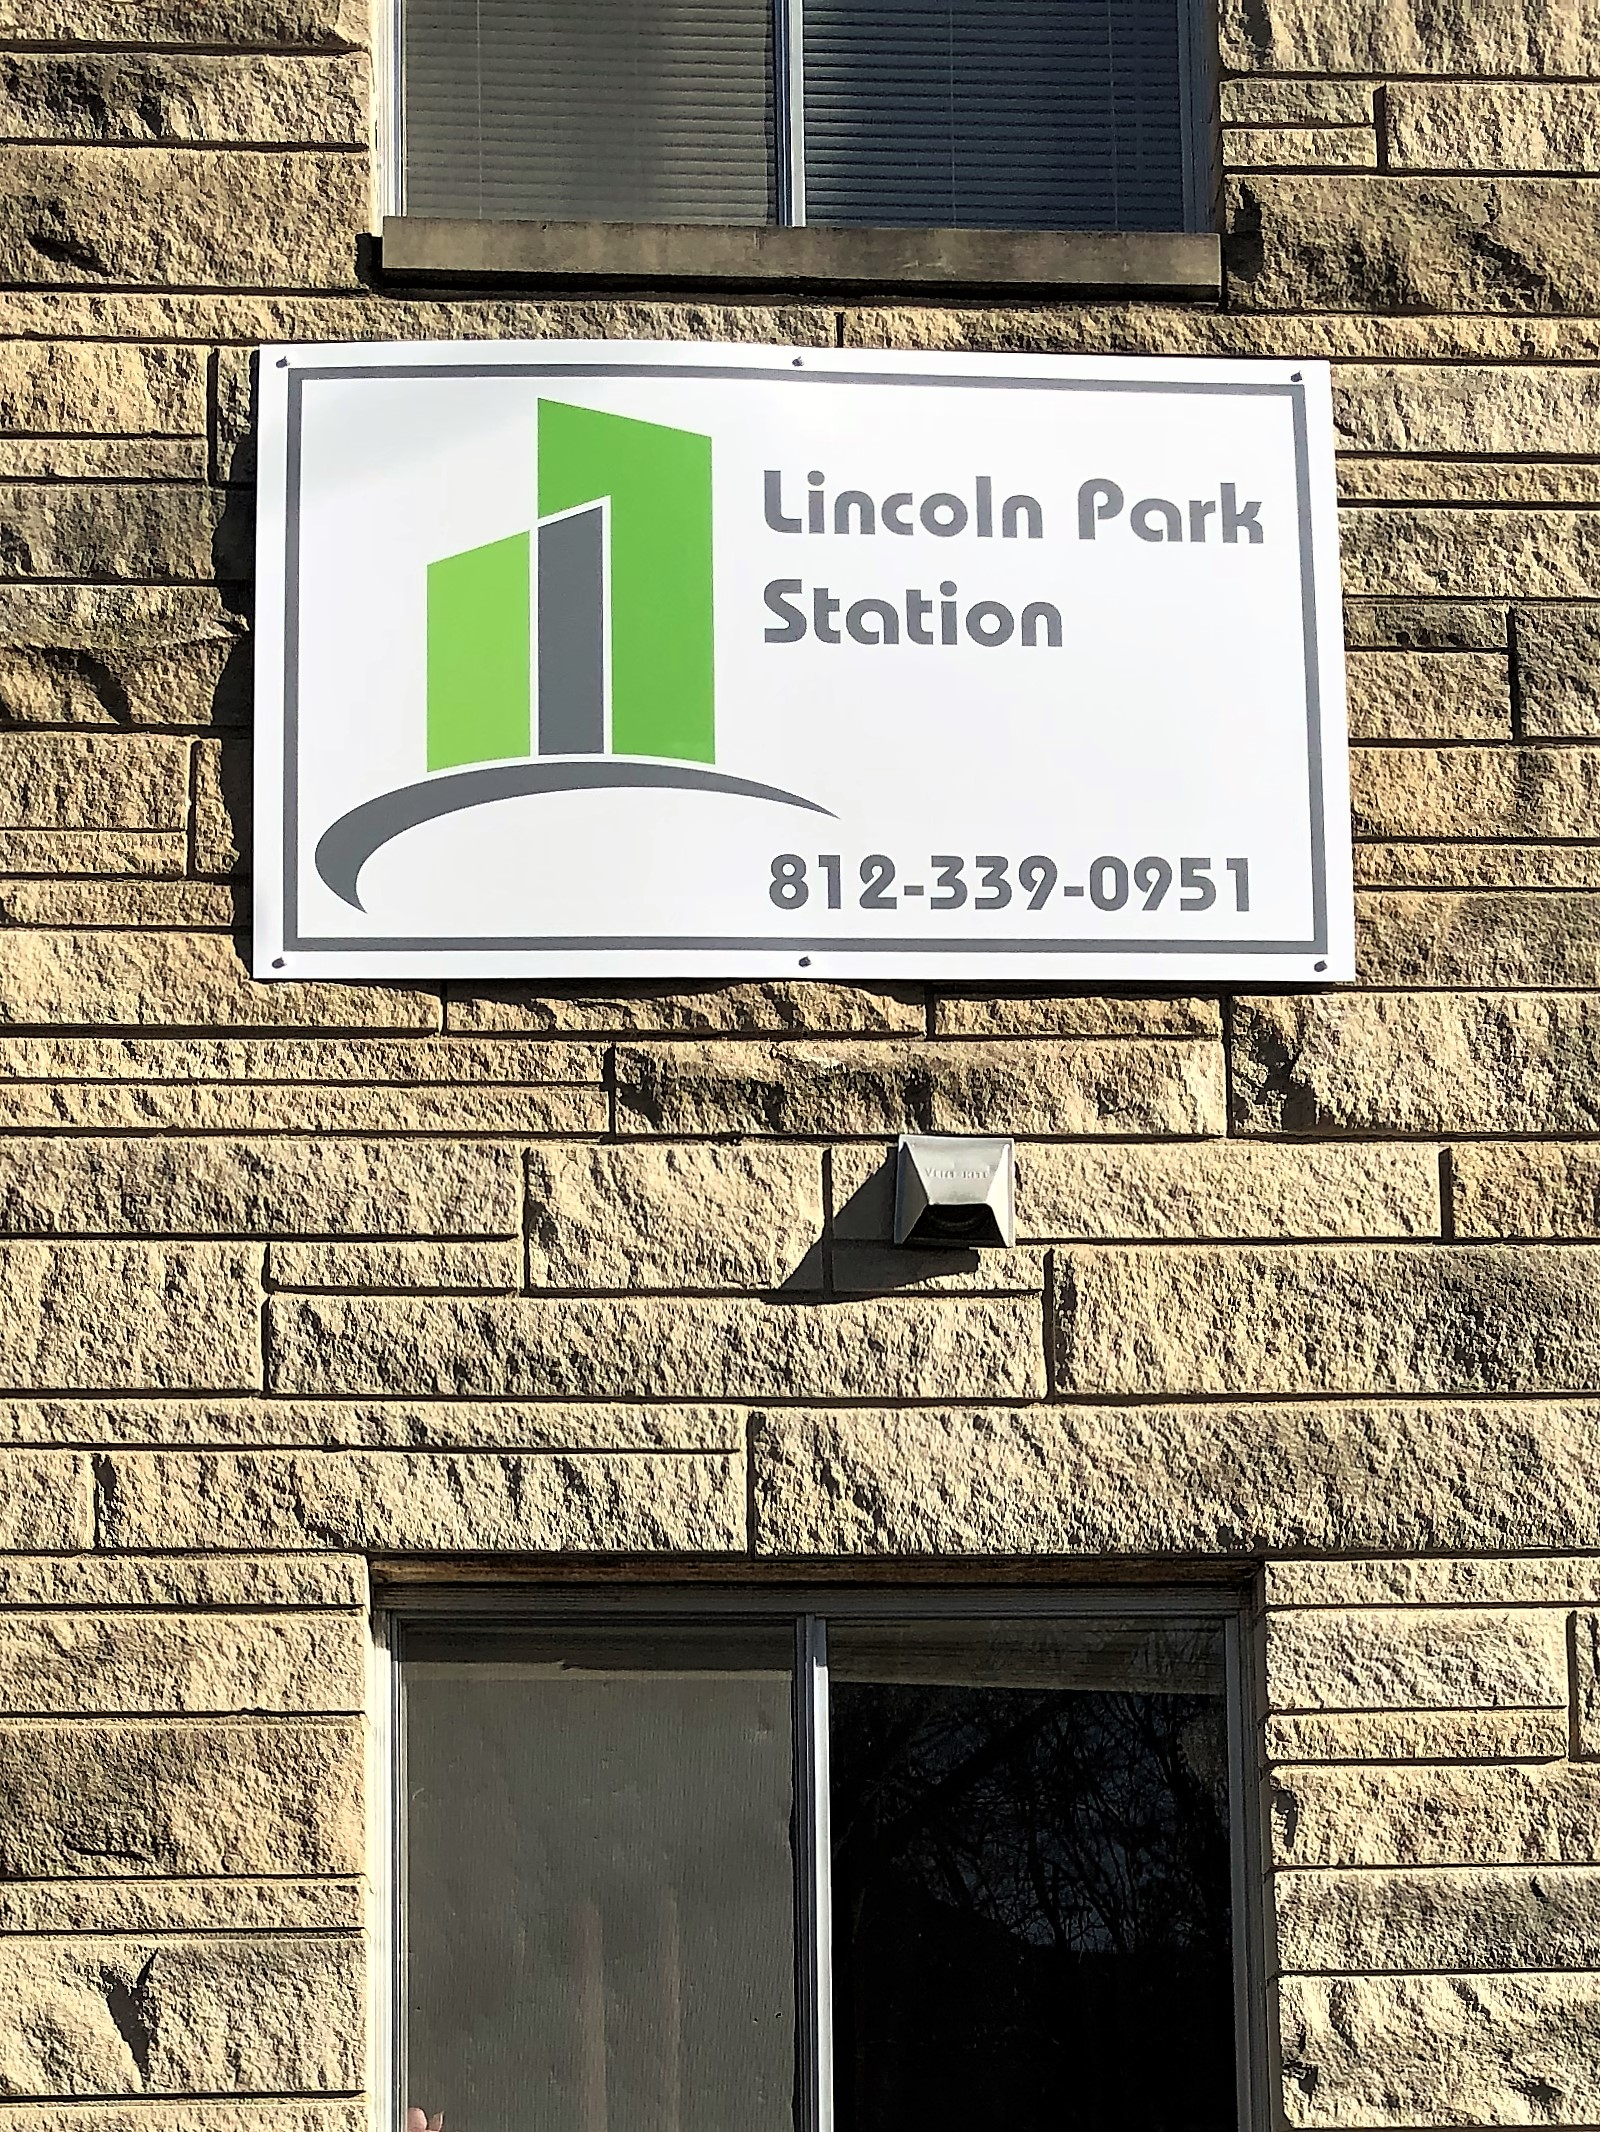 Apartments Near Indiana University Lincoln Park Station for Indiana University Students in Bloomington, IN